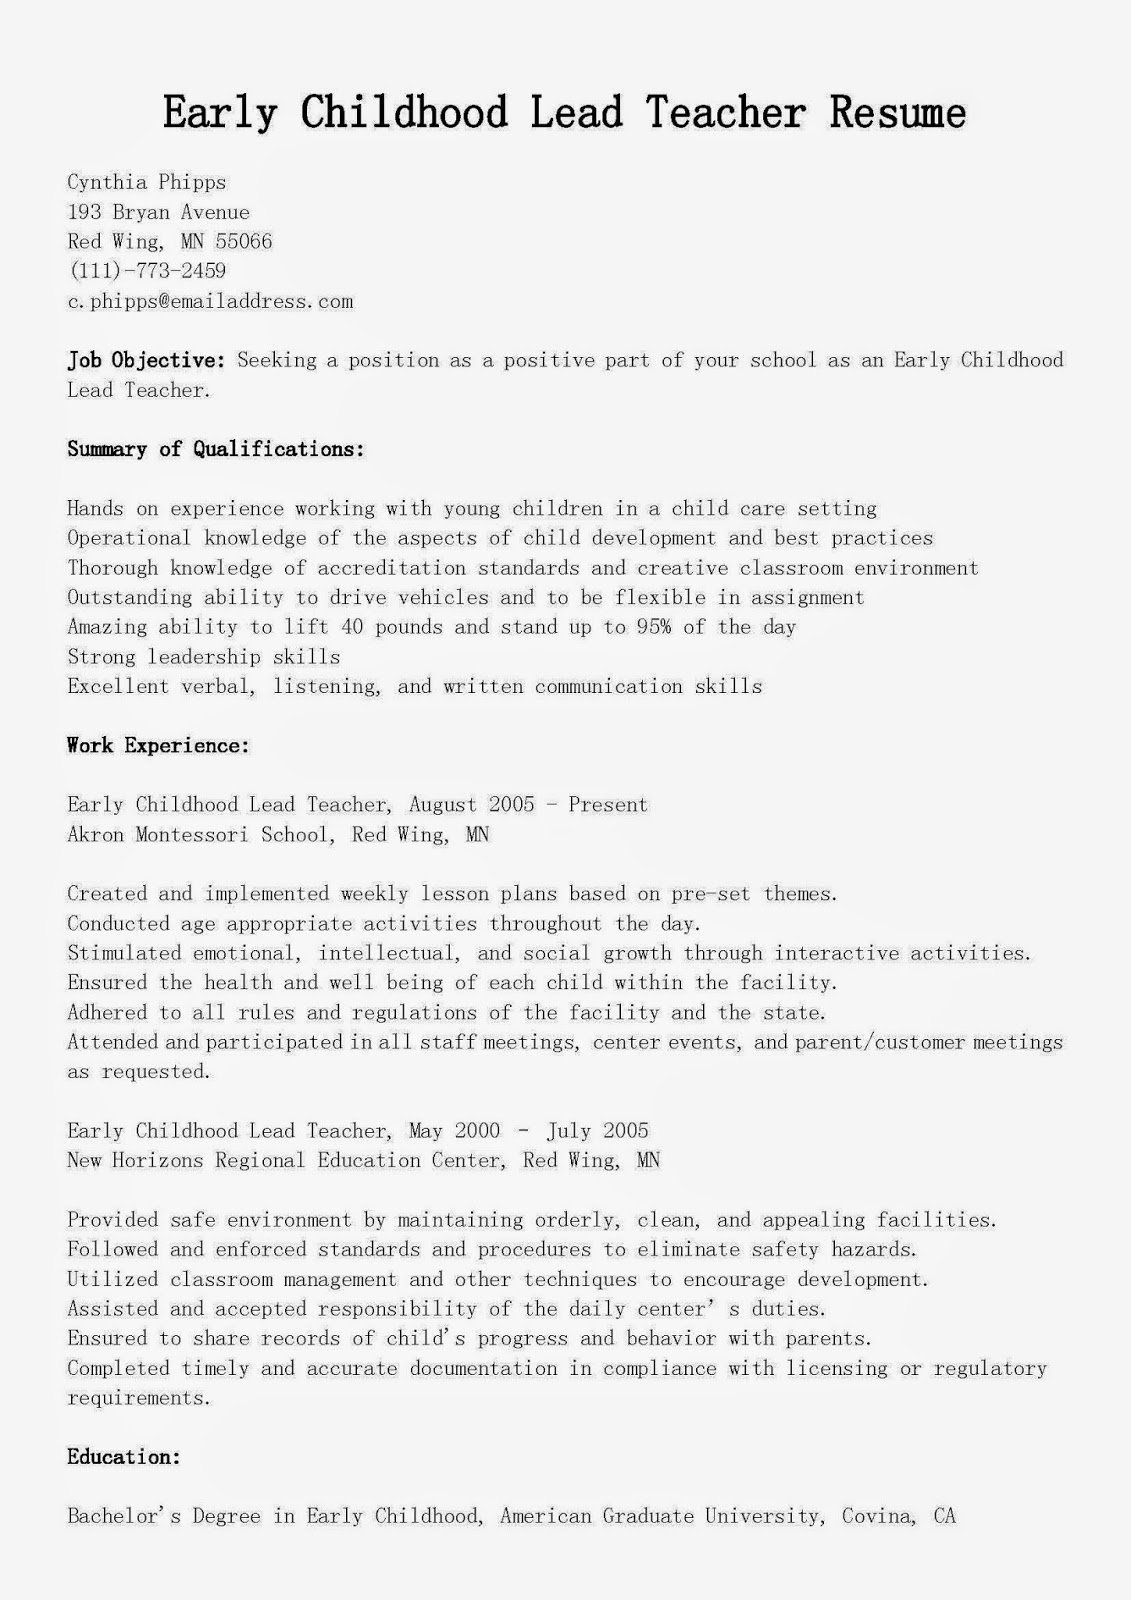 23 Preschool Teacher Resume Examples in 2020 Teacher